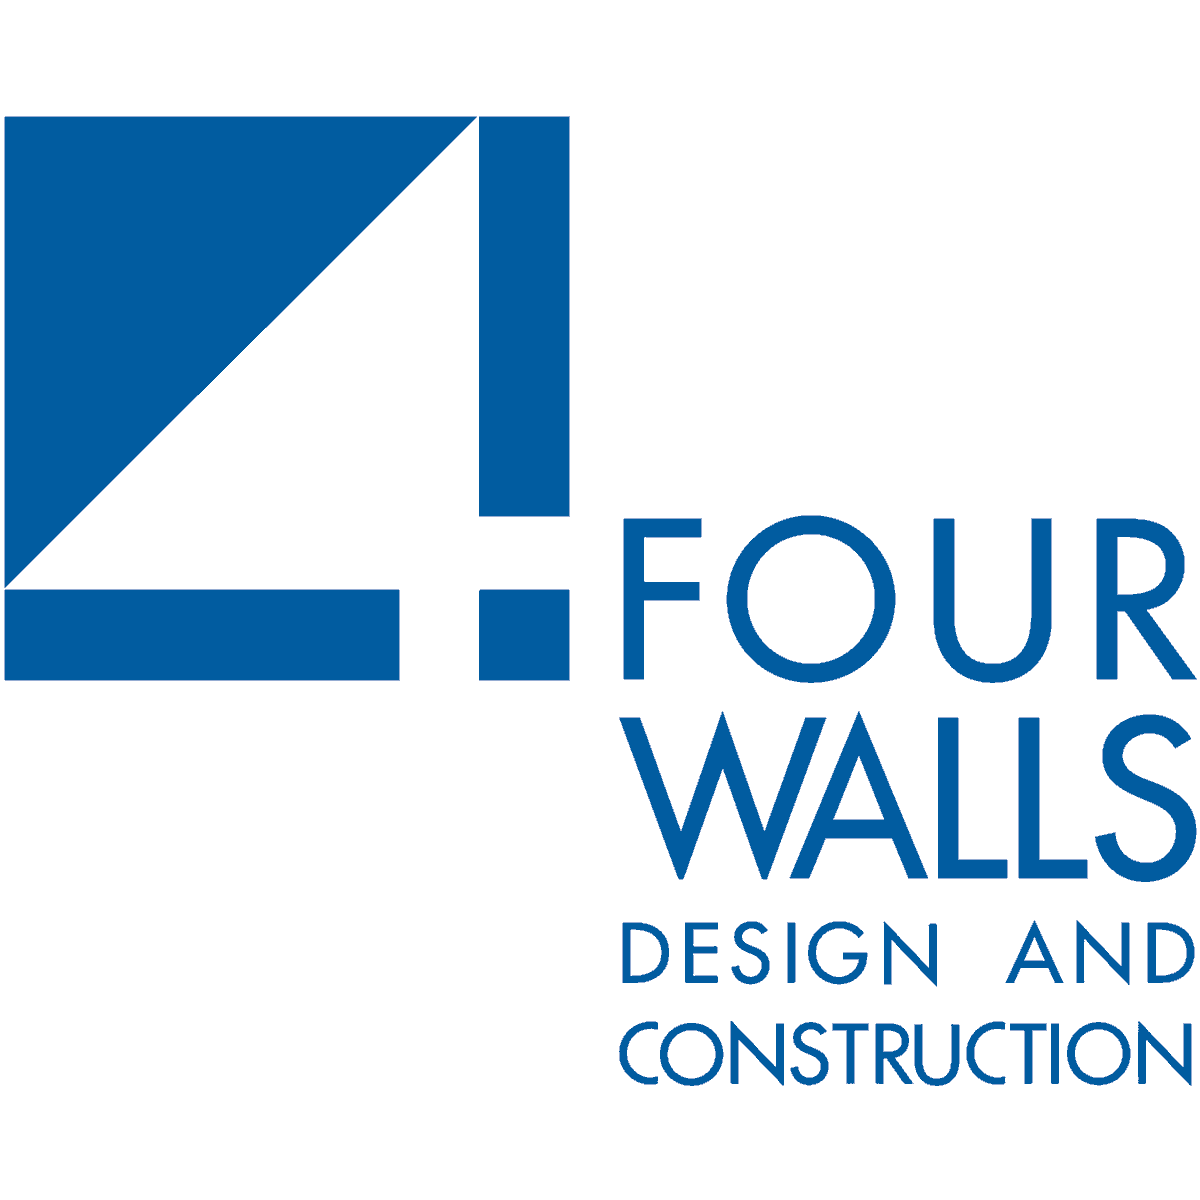 four walls design and construction